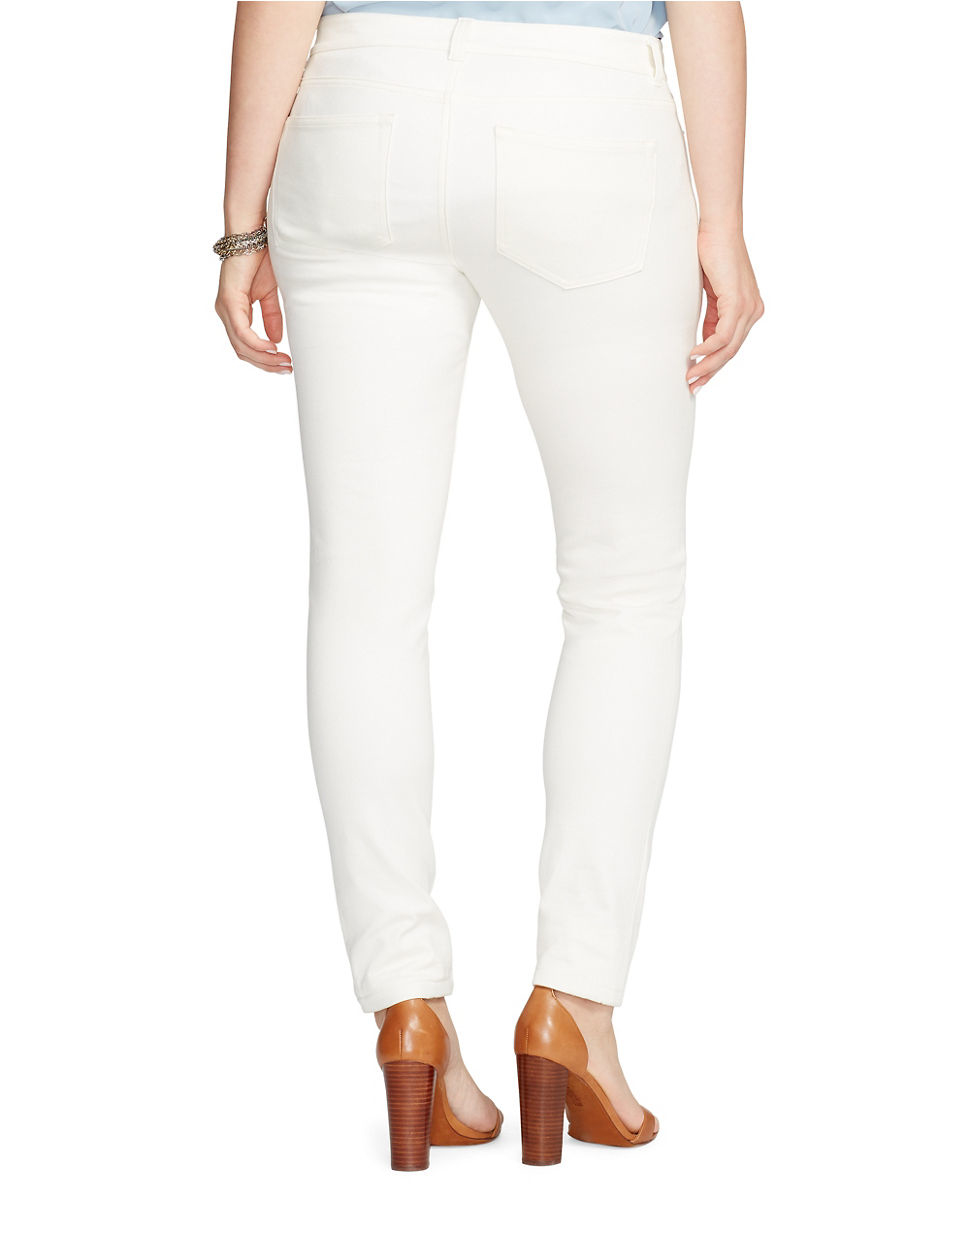 Find great deals on eBay for white cotton pants. Shop with confidence.